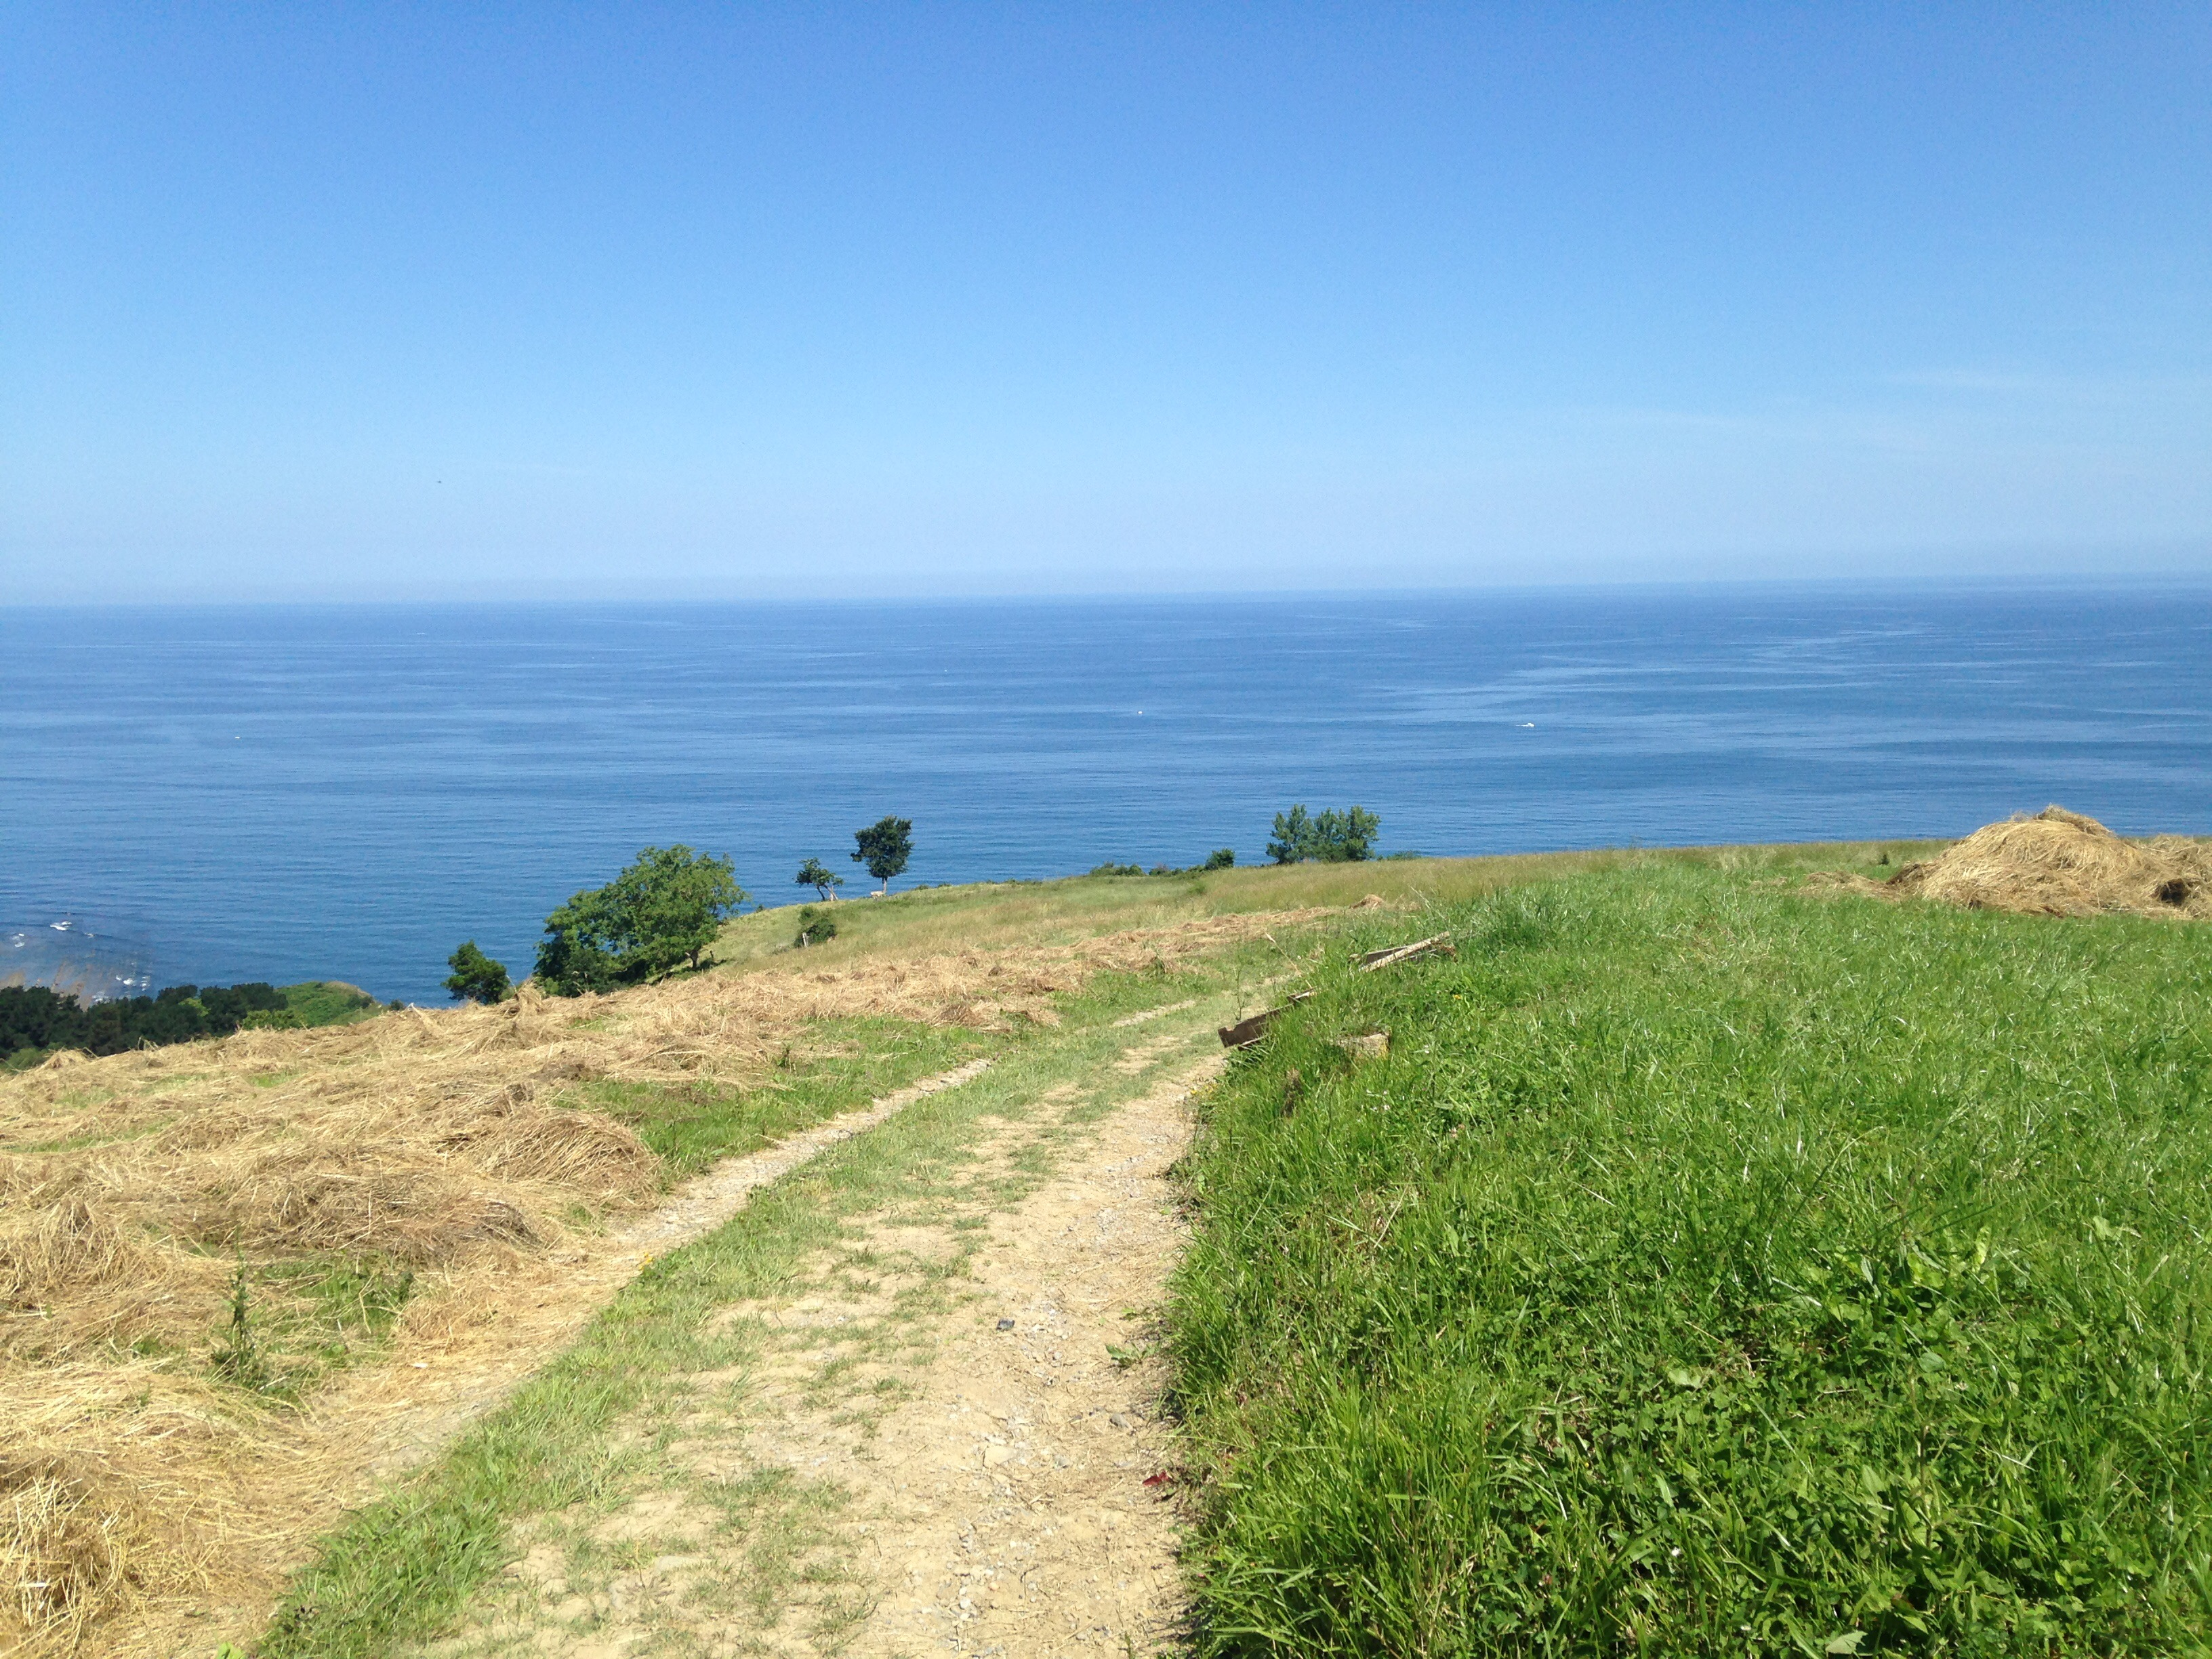 Path leading to the sea, Camino del Norte, Spain